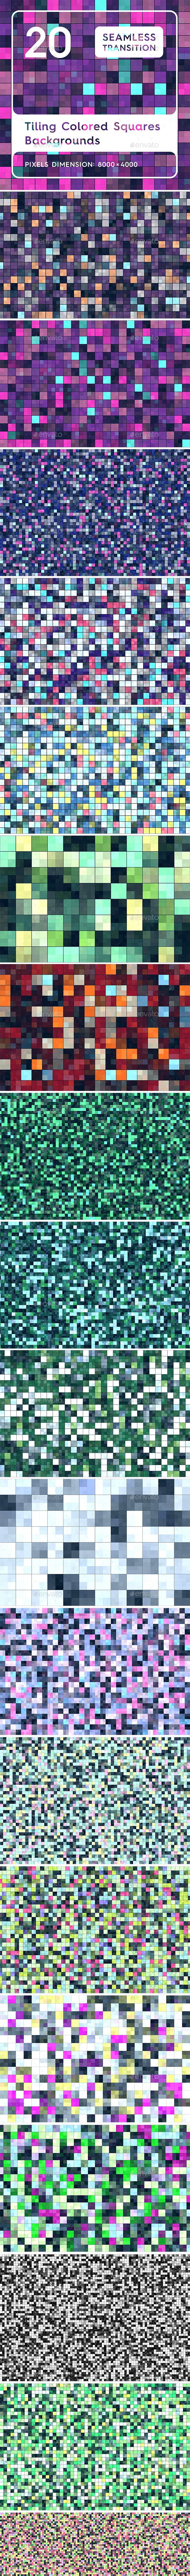 20 Tiling Colored Square Backgrounds - 3DOcean Item for Sale